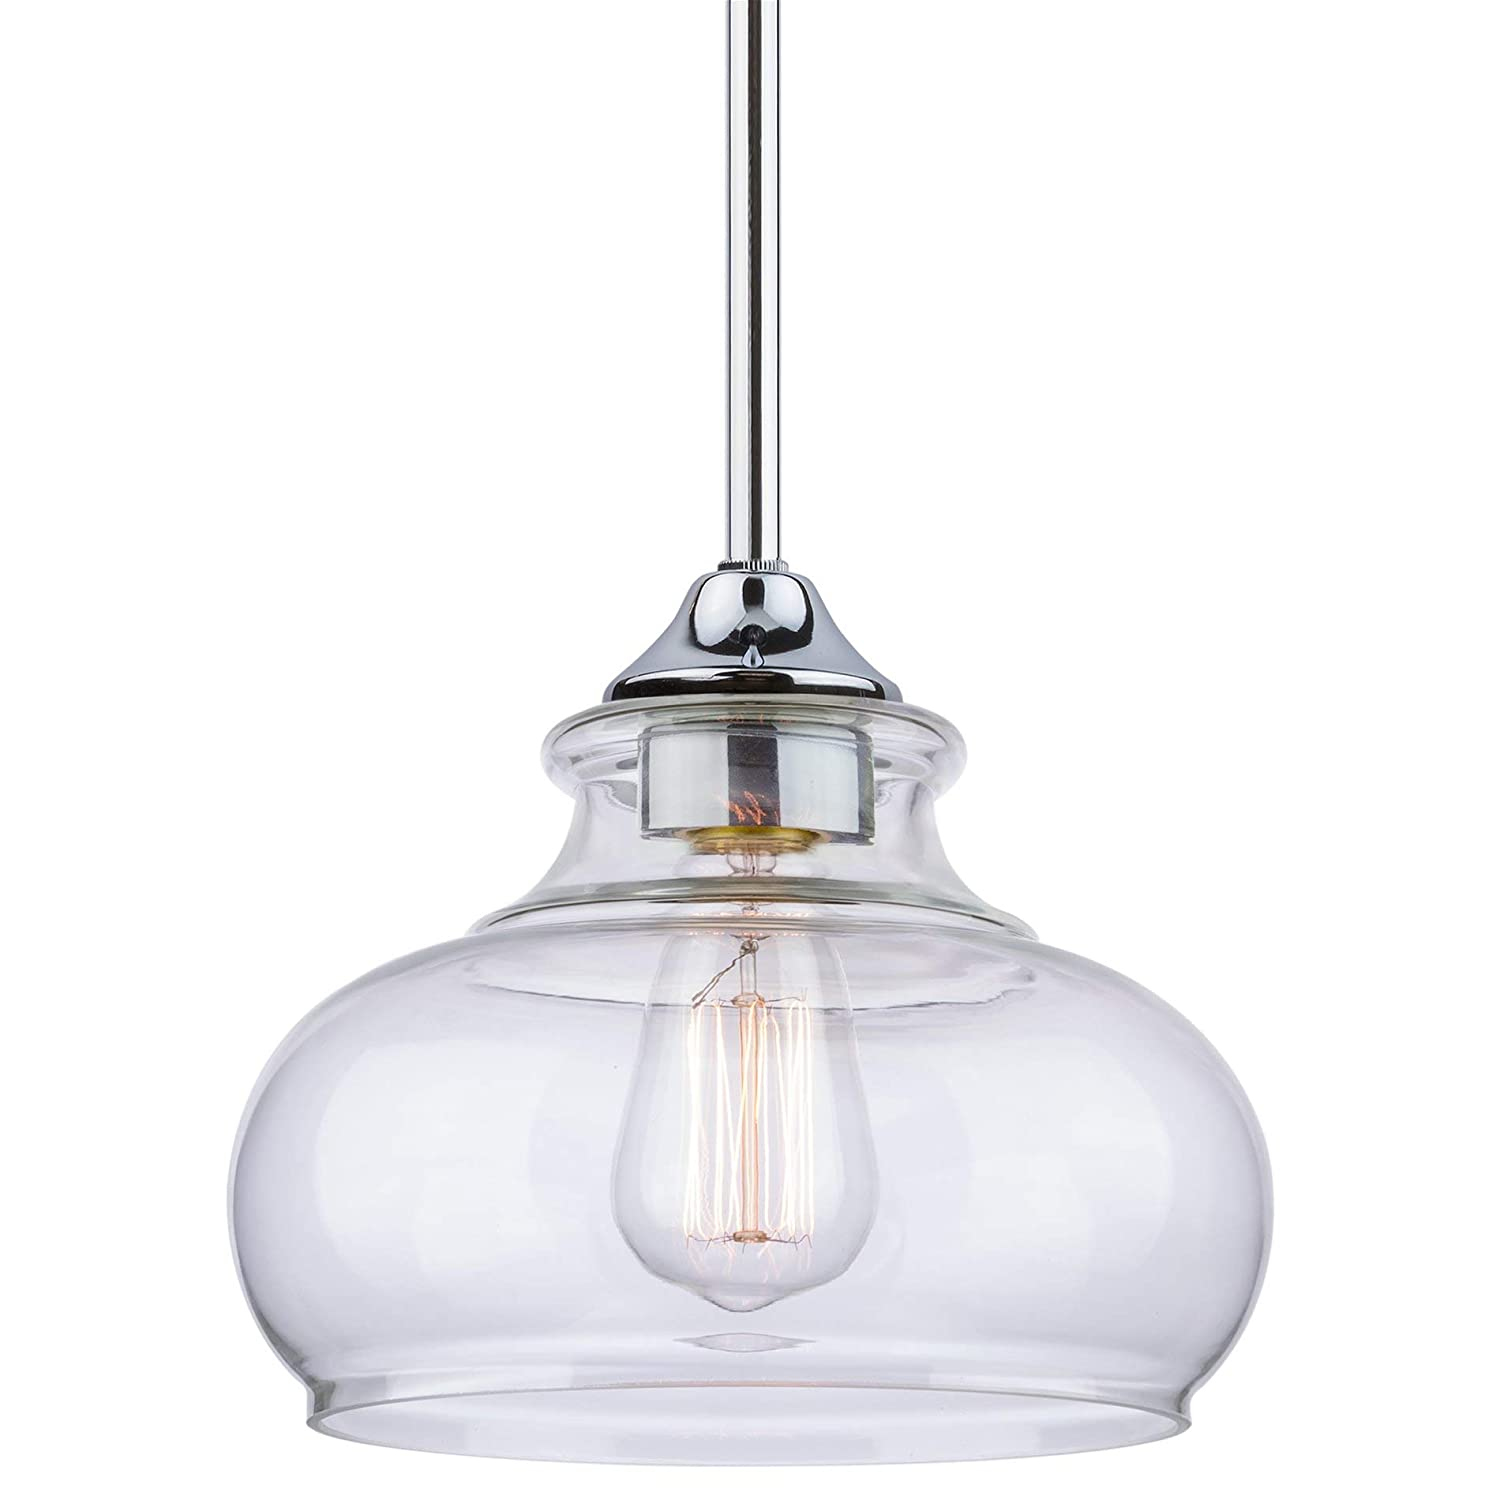 """Kira Home Harlow 9"""" Modern Industrial Farmhouse Stem-Hung Pendant Light with Clear Glass Shade, Adjustable Hanging Height, Chrome Finish"""